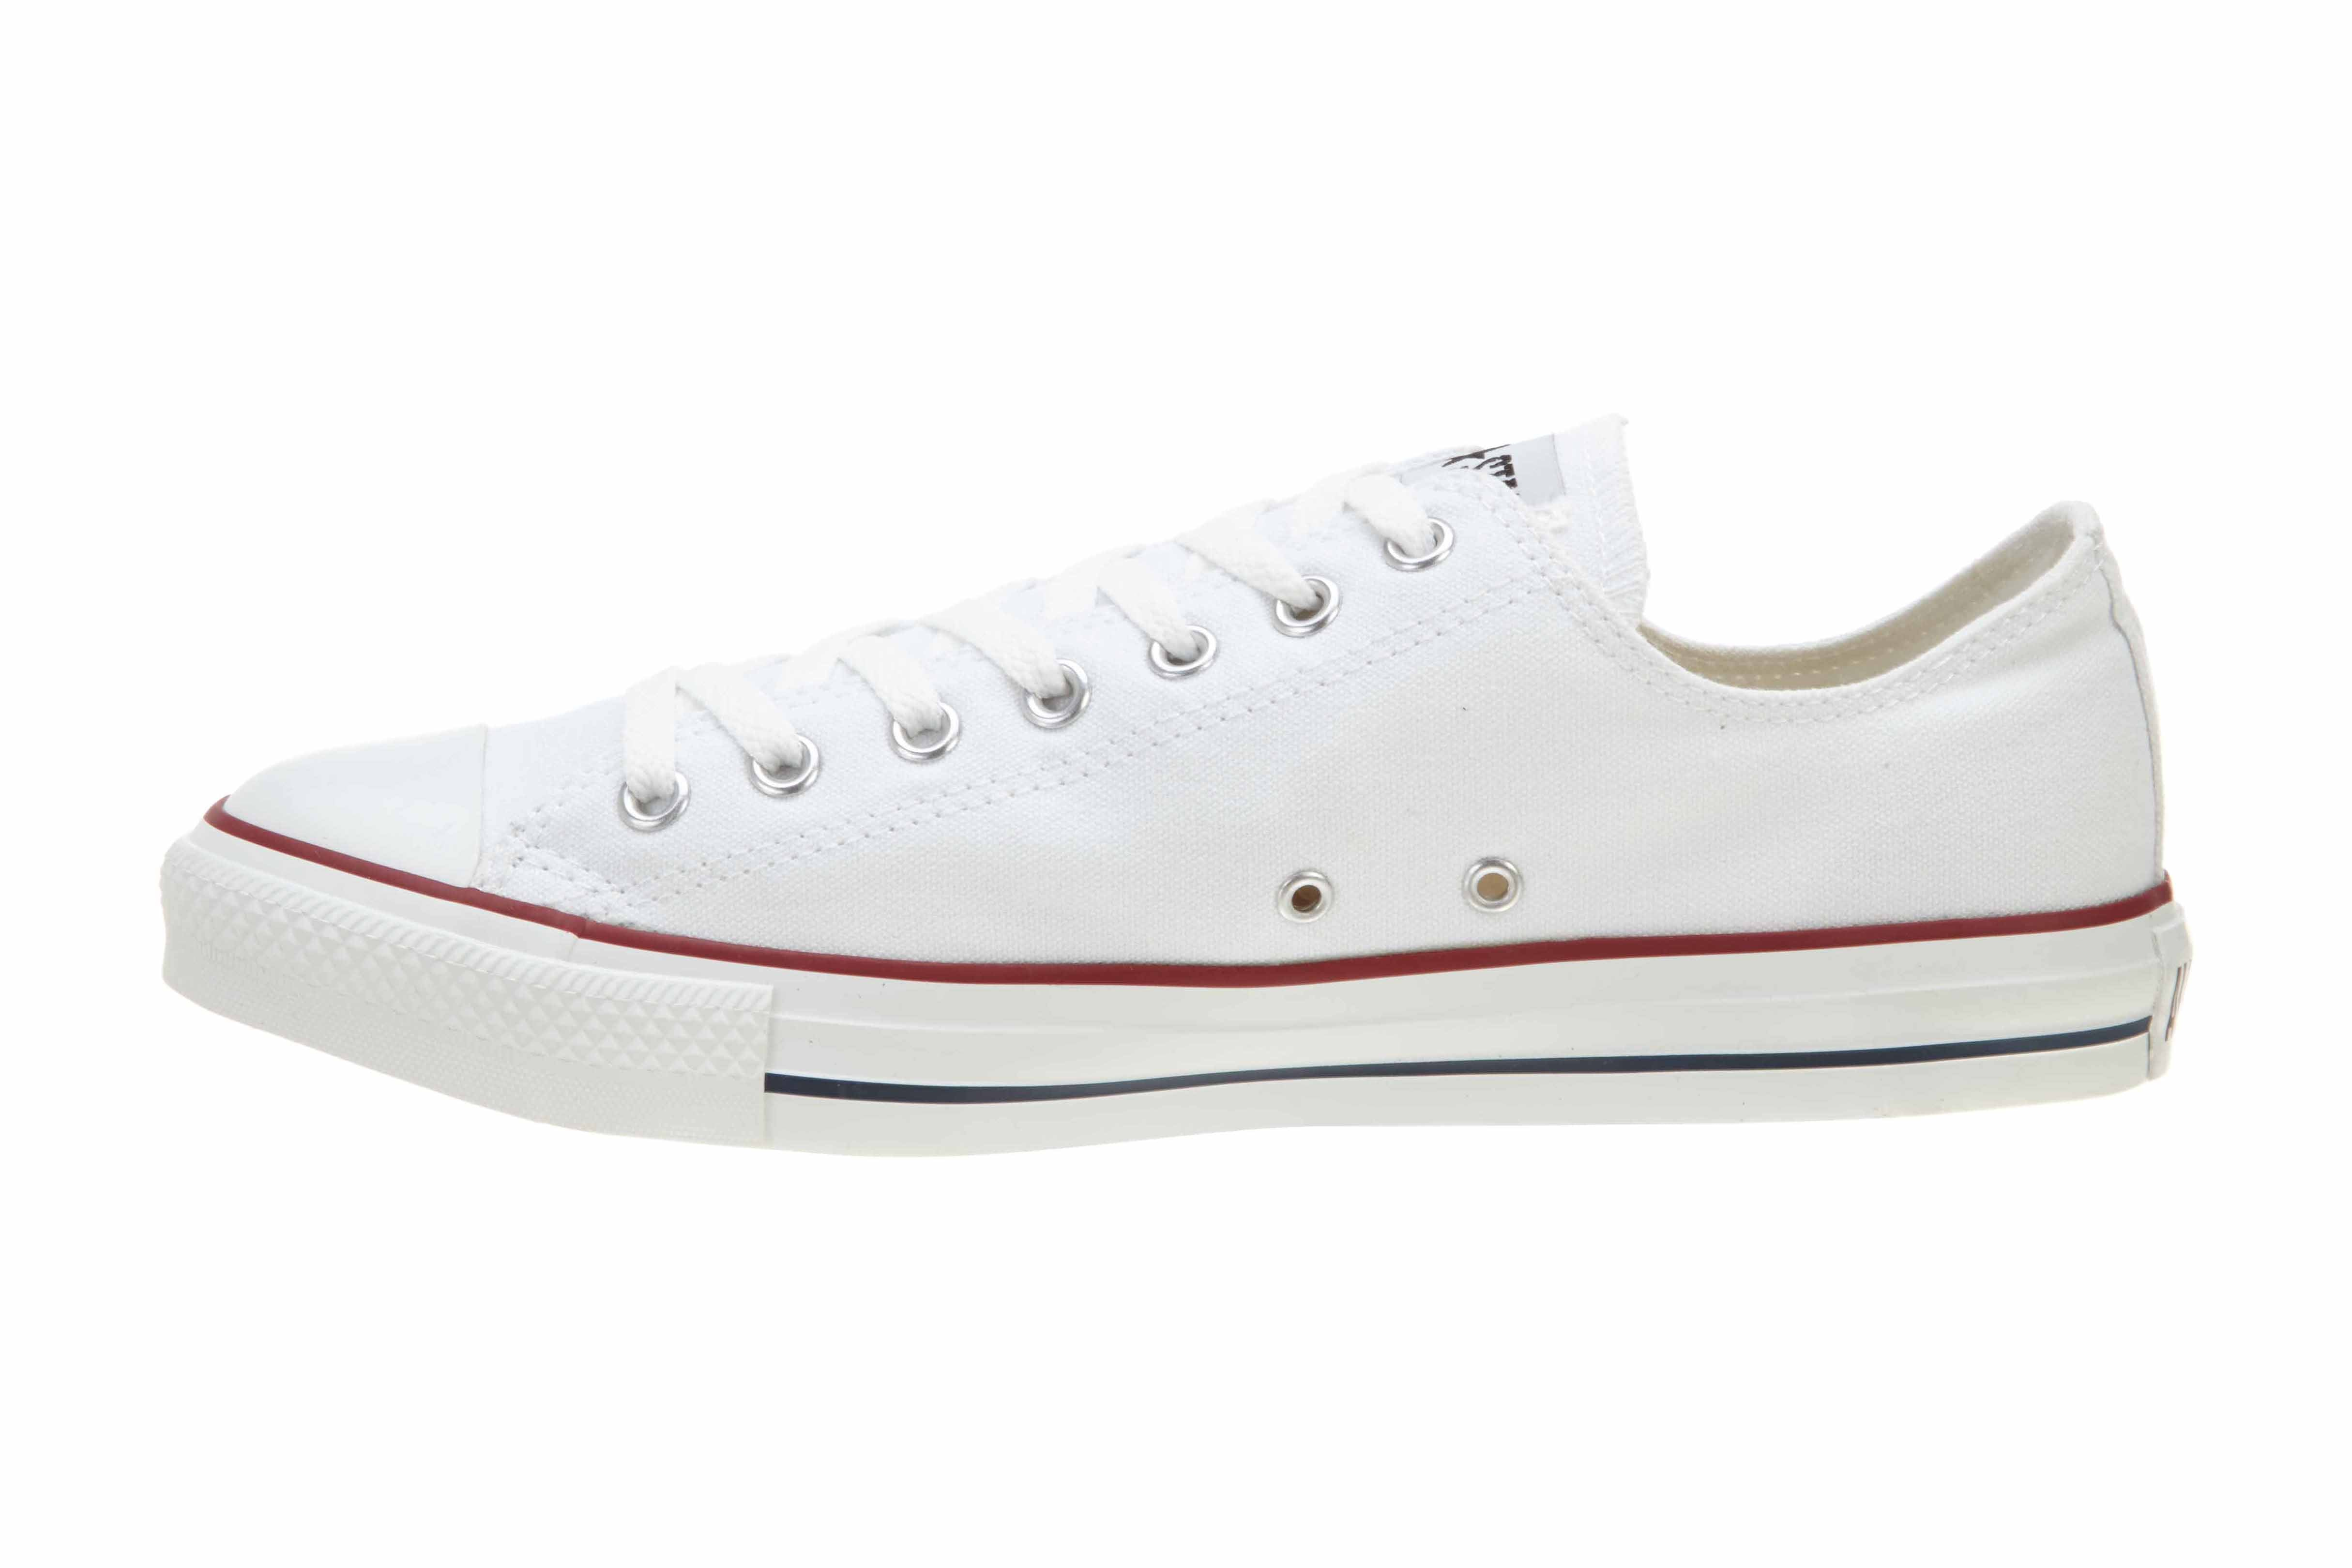 7668a534b3ce Converse Chuck Taylor All Star Ox Optic White Unisex Style M7652